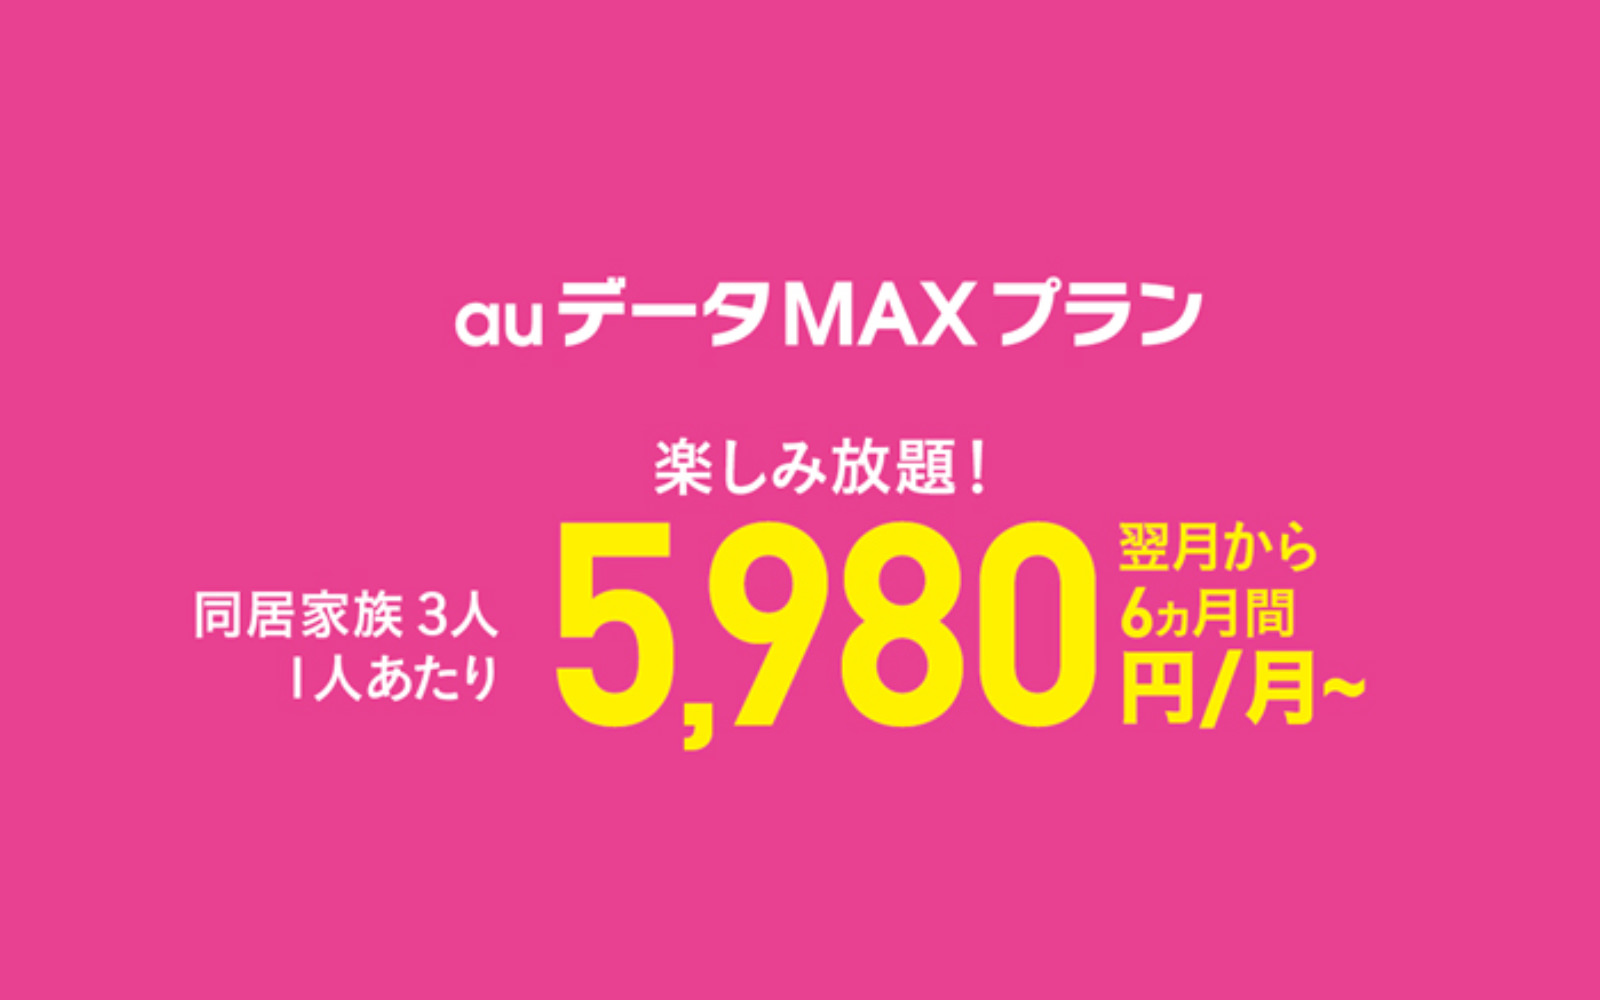 Au data max plan released